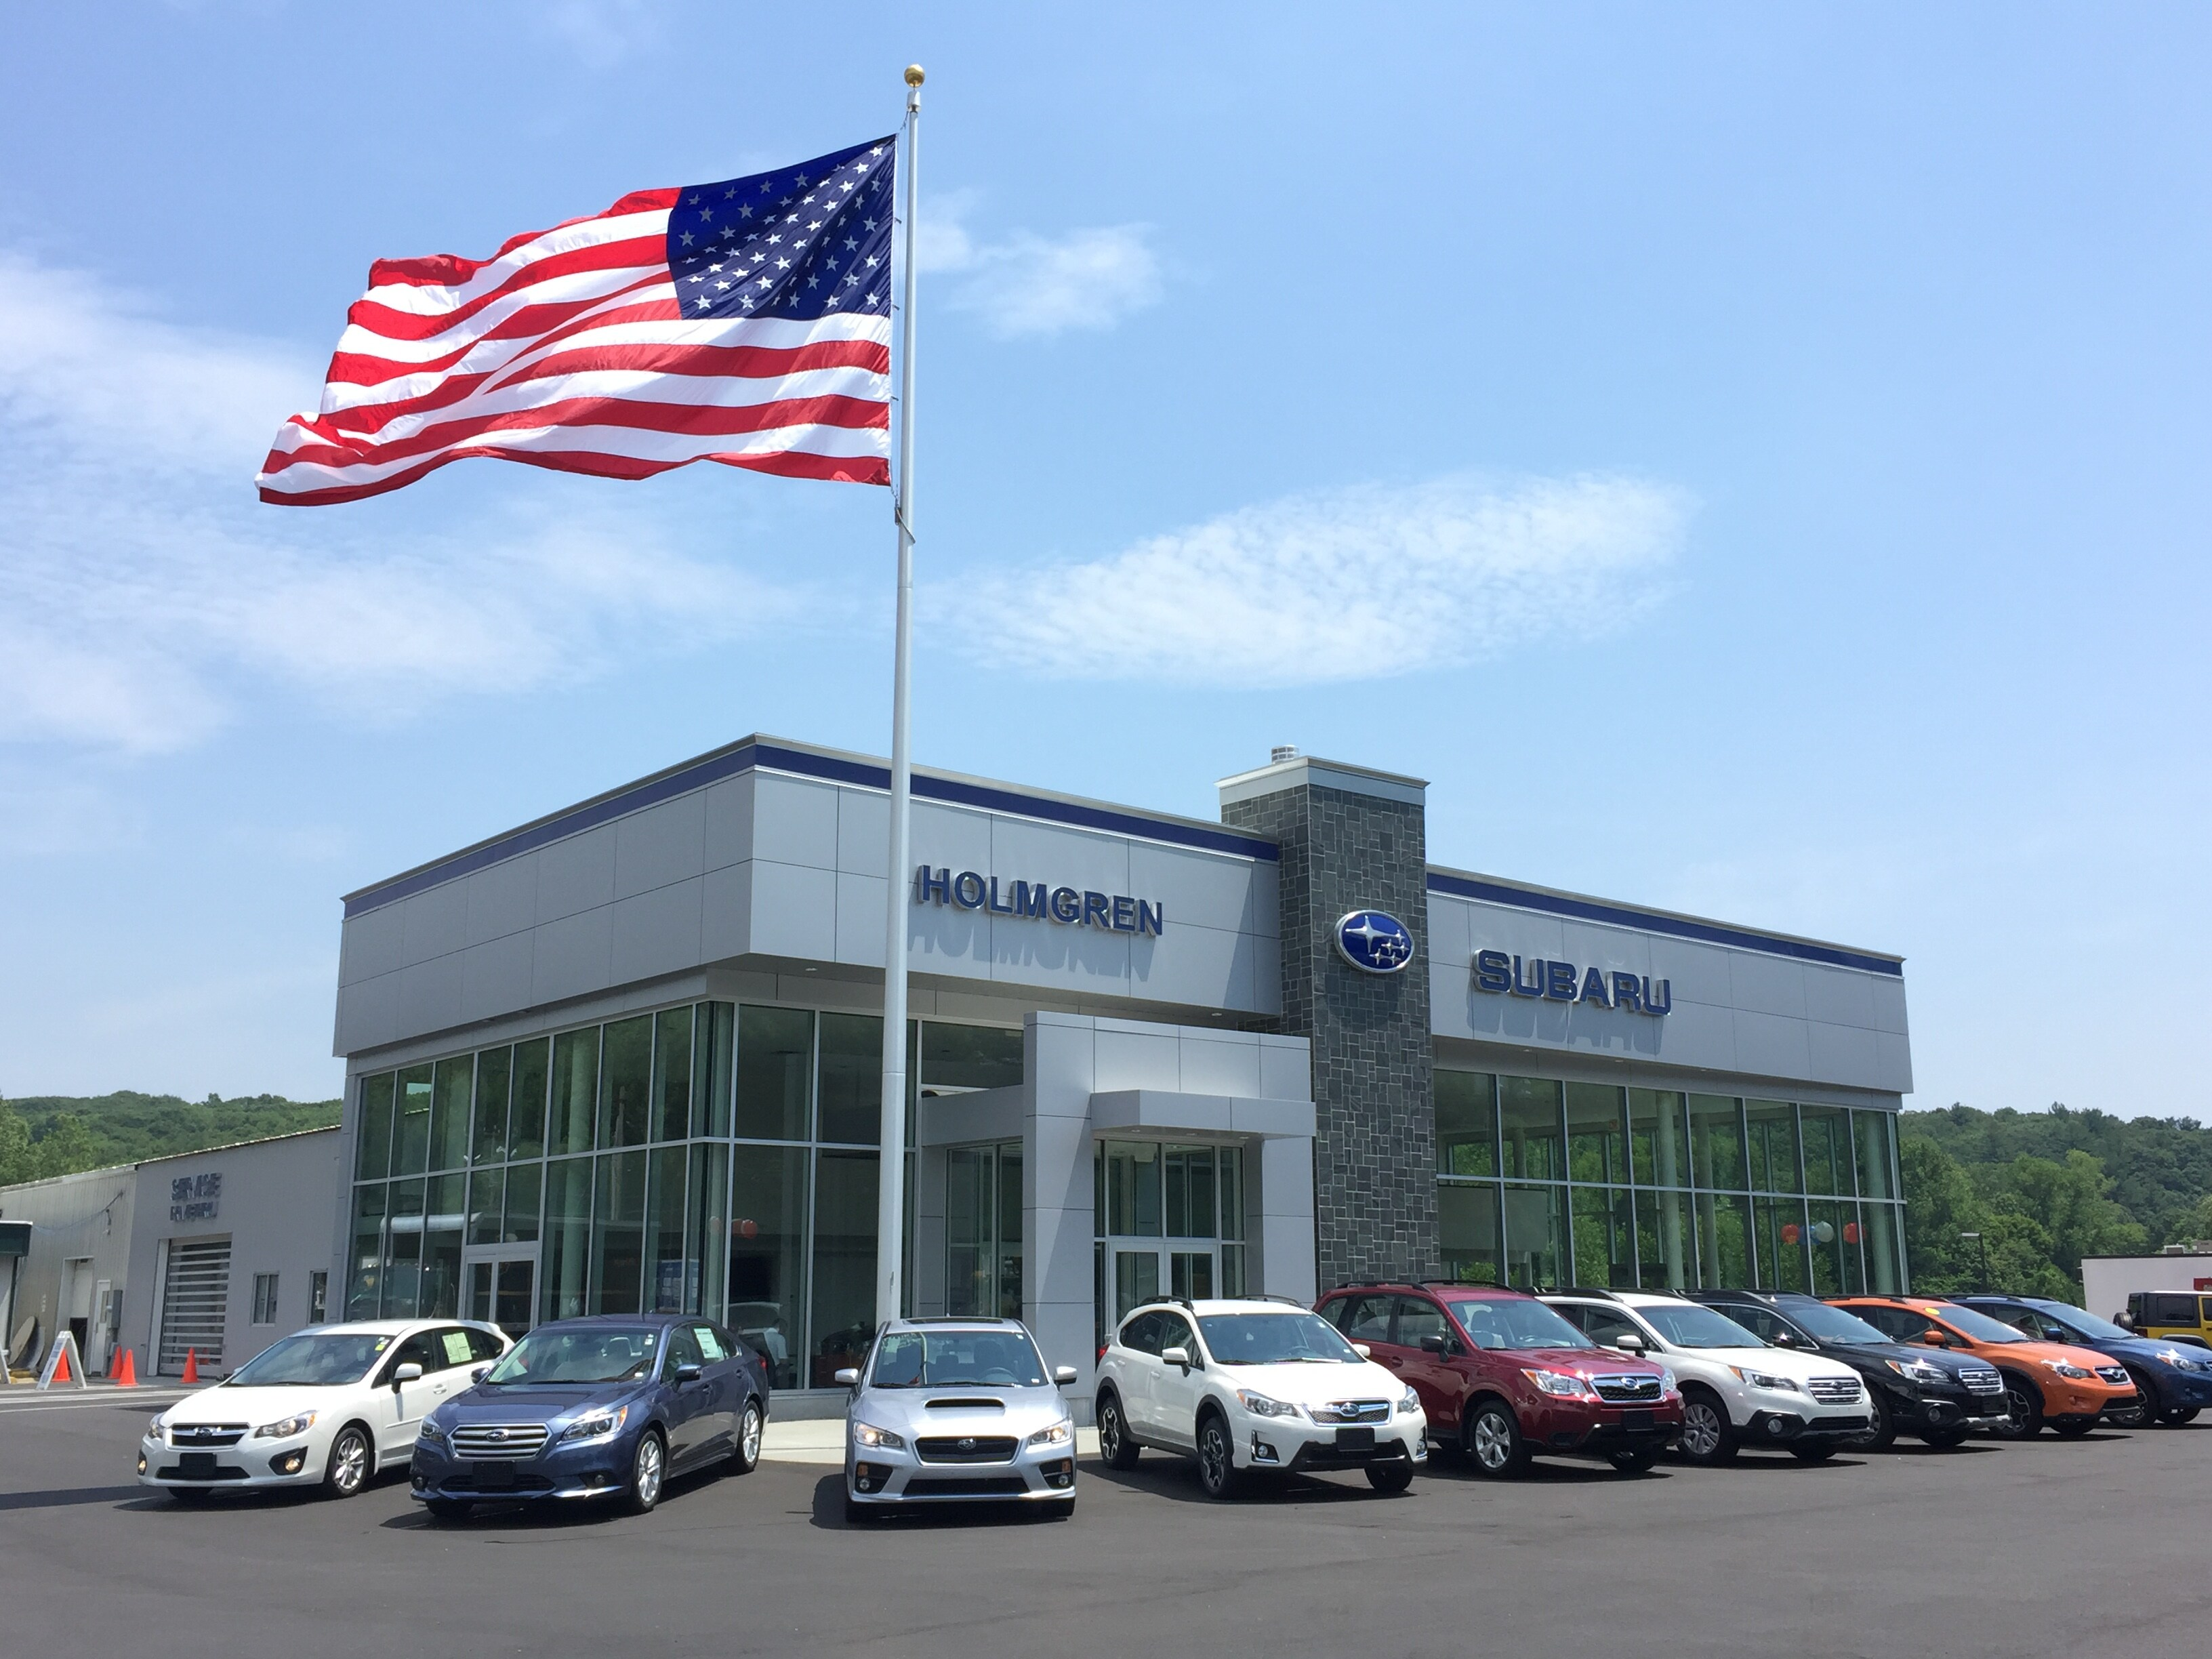 Holmgren Subaru Shares the Love with Sails Up 4 Cancer; Celebration Day is Tuesday, June 11